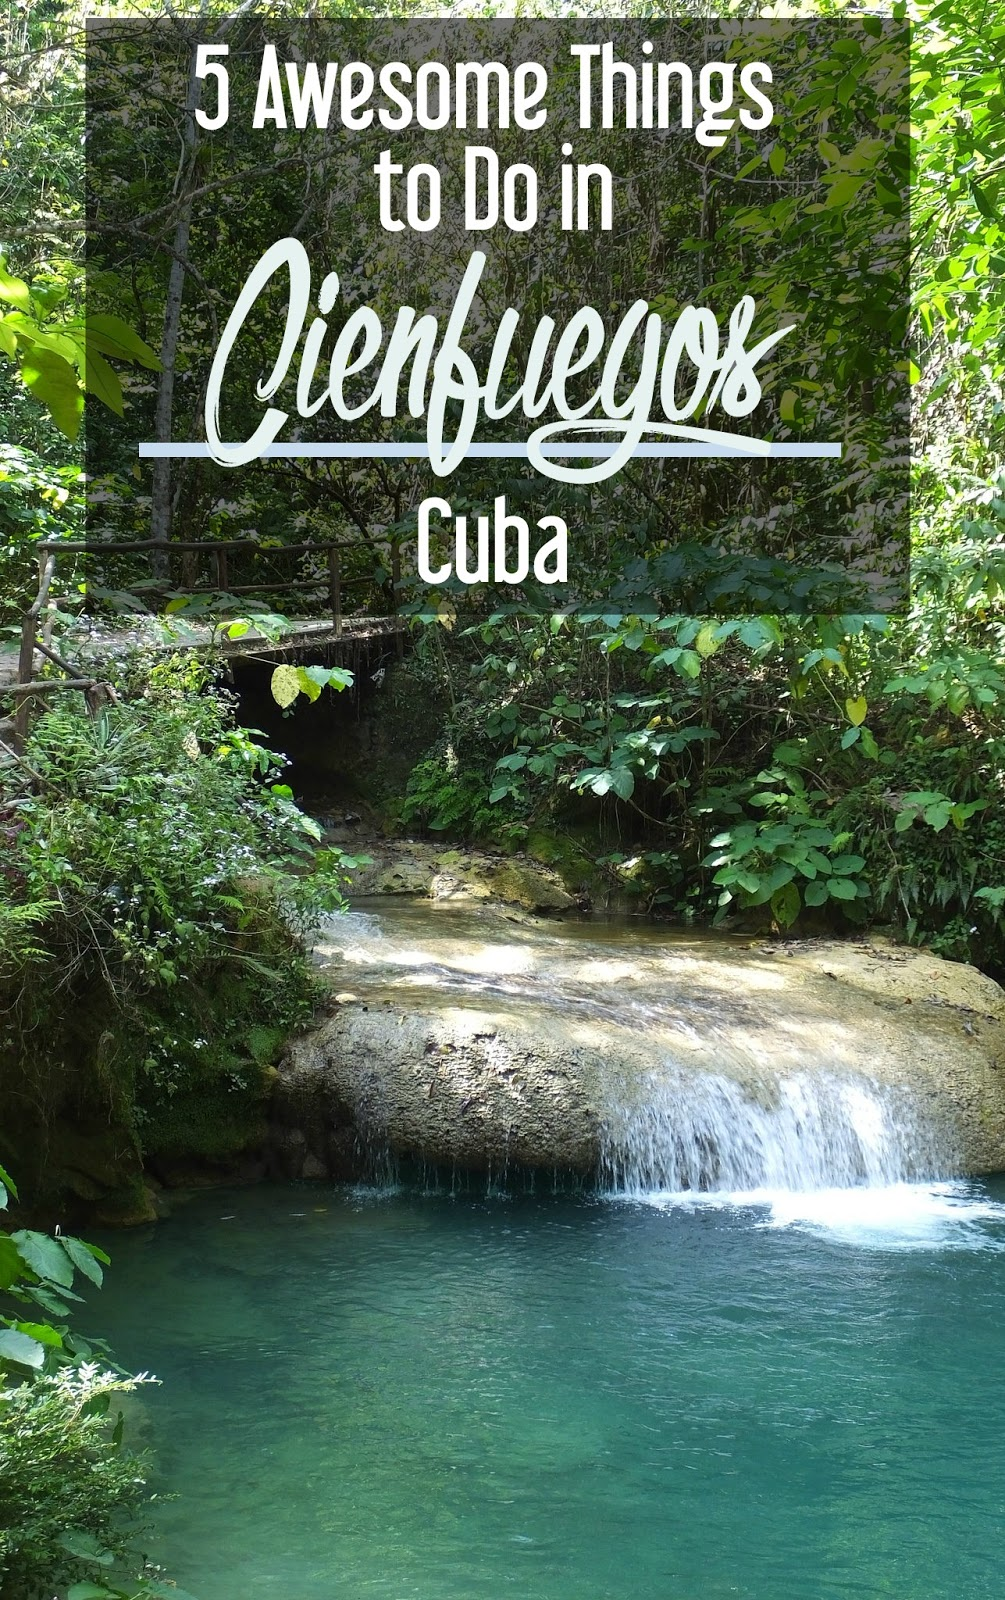 5 Awesome Things to Do in Cienfuegos, Cuba - Cosmos ...